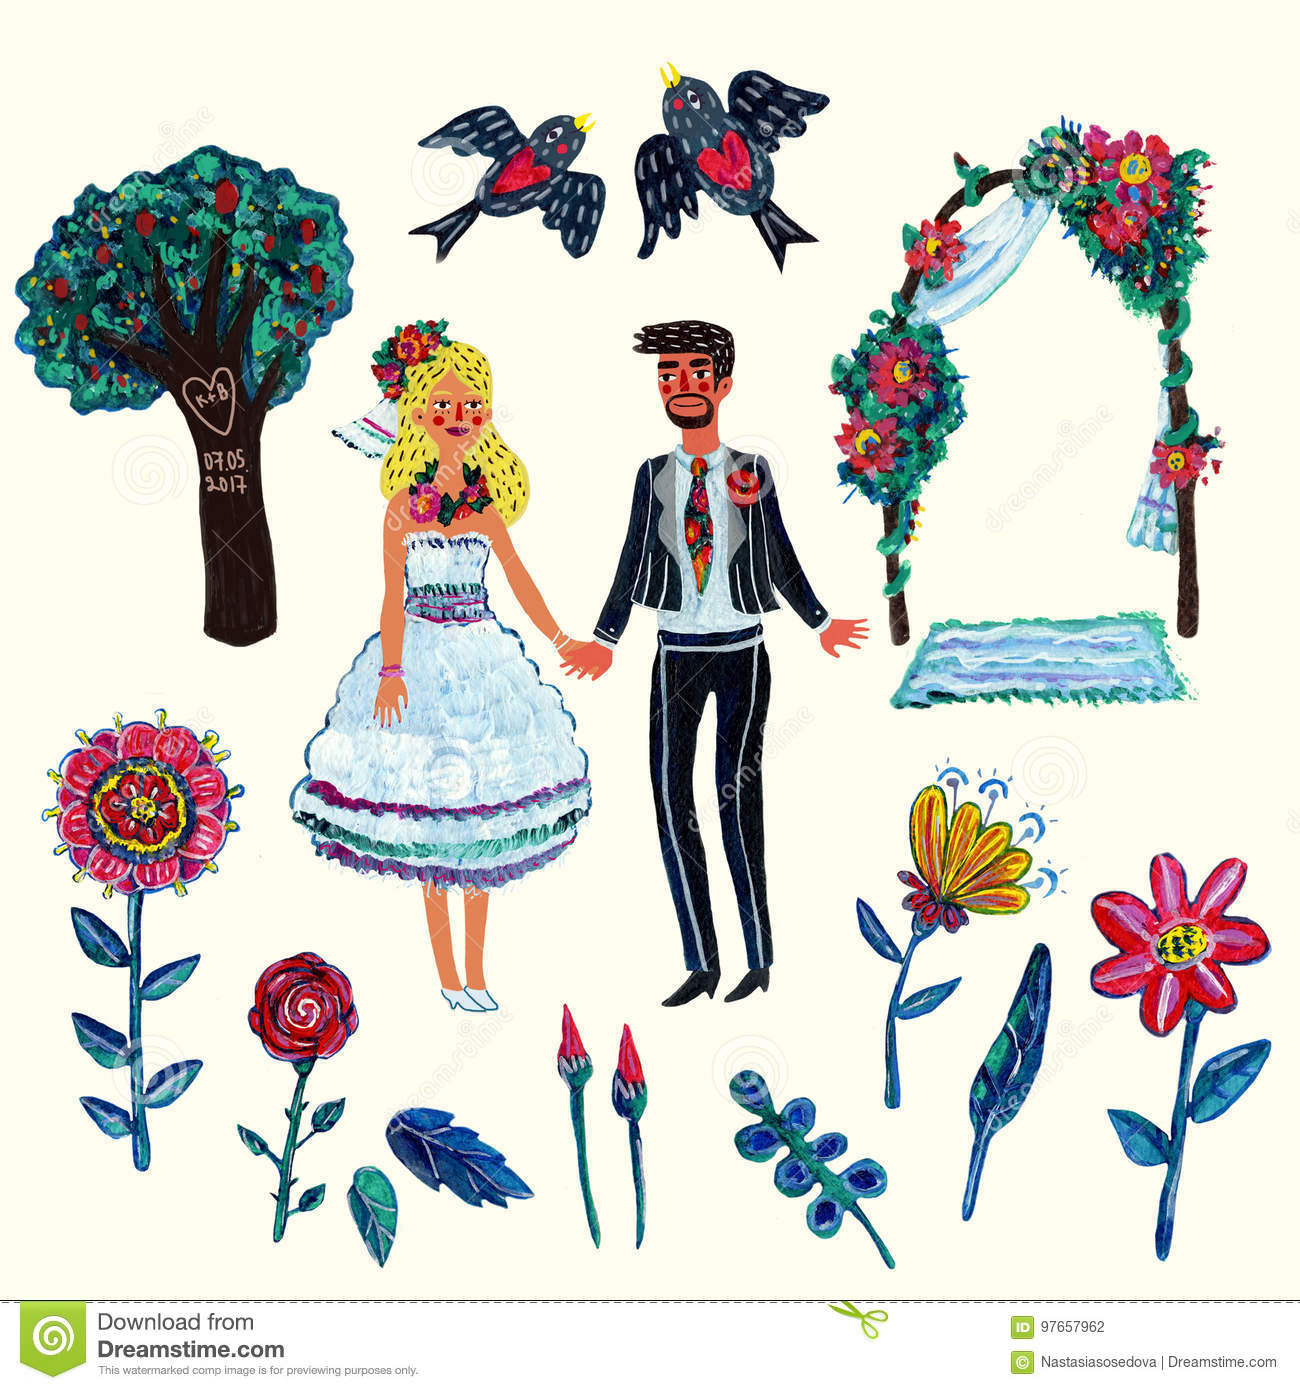 Garden Wedding Clipart With Bride Groom Two Swallowes Flowers Leaves Tree And Arch